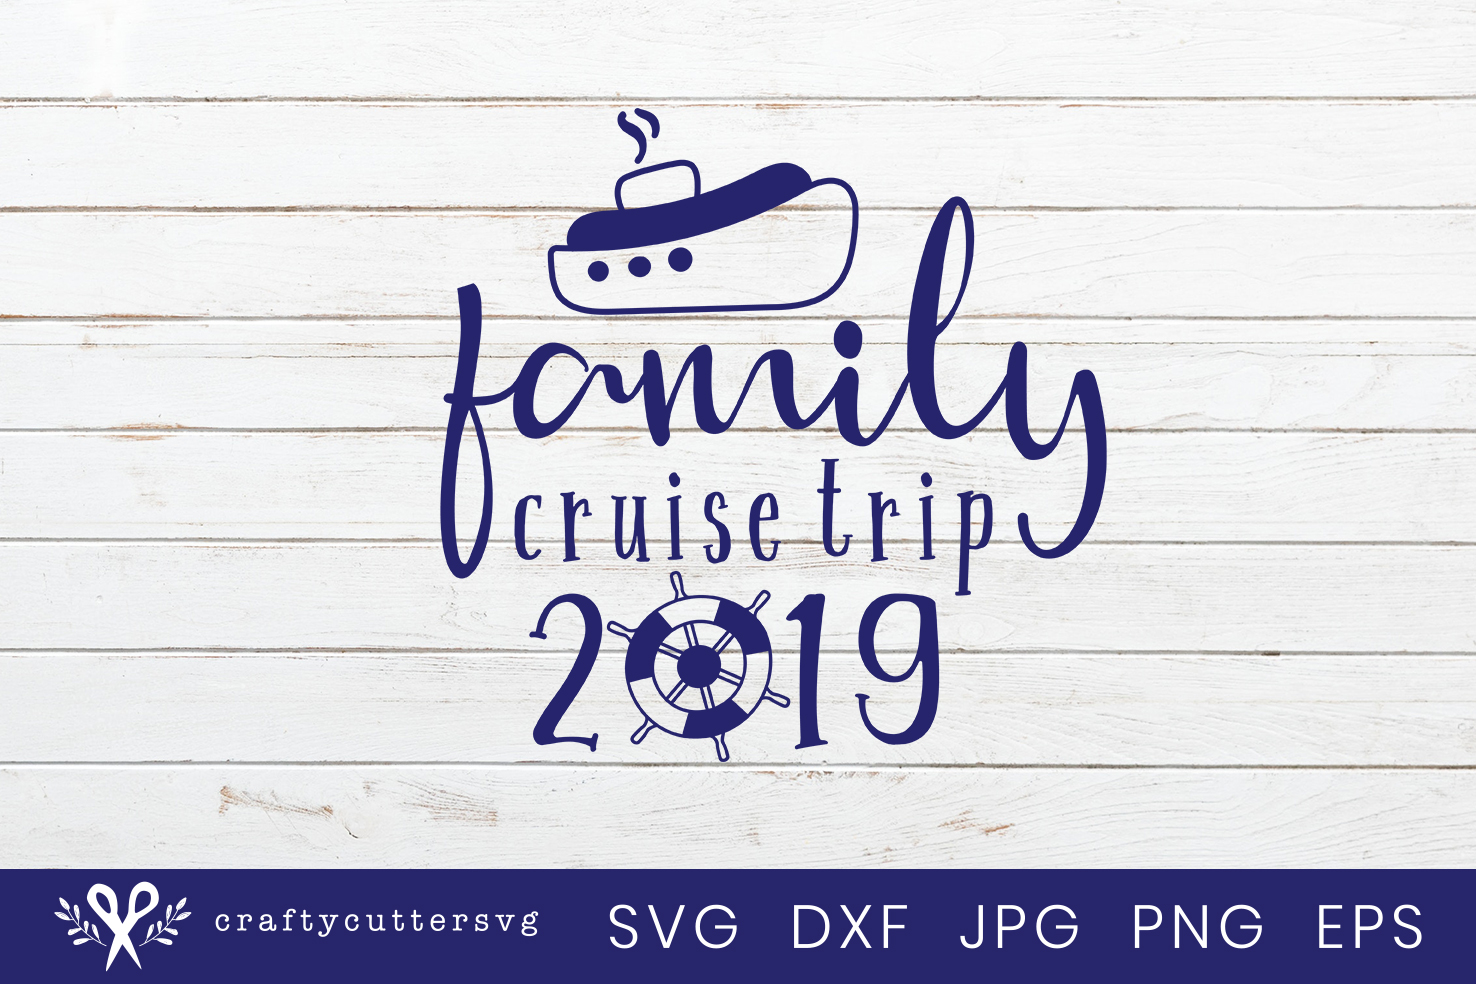 Family Cruise Trip Svg Cut File Ship Steering wheel Clipart example image 2